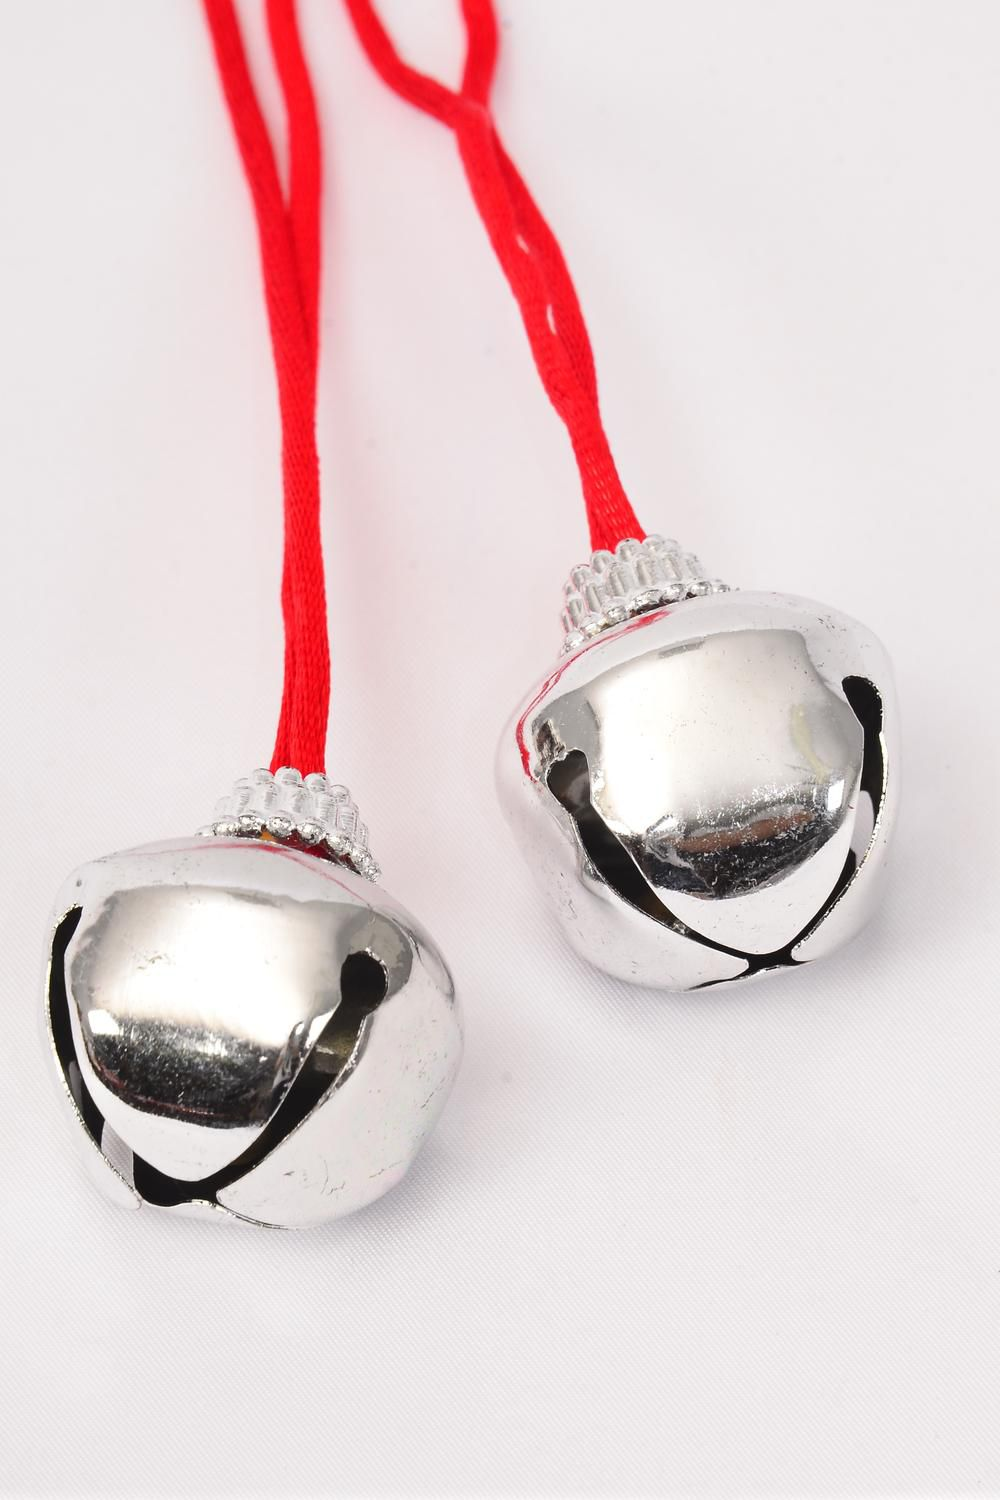 "Jingle Bell Necklace Silver/DZ **Silver** Bell Size-3.5 cm Wide,36"" Long,Hang tag & OPP bag & UPC Code -"